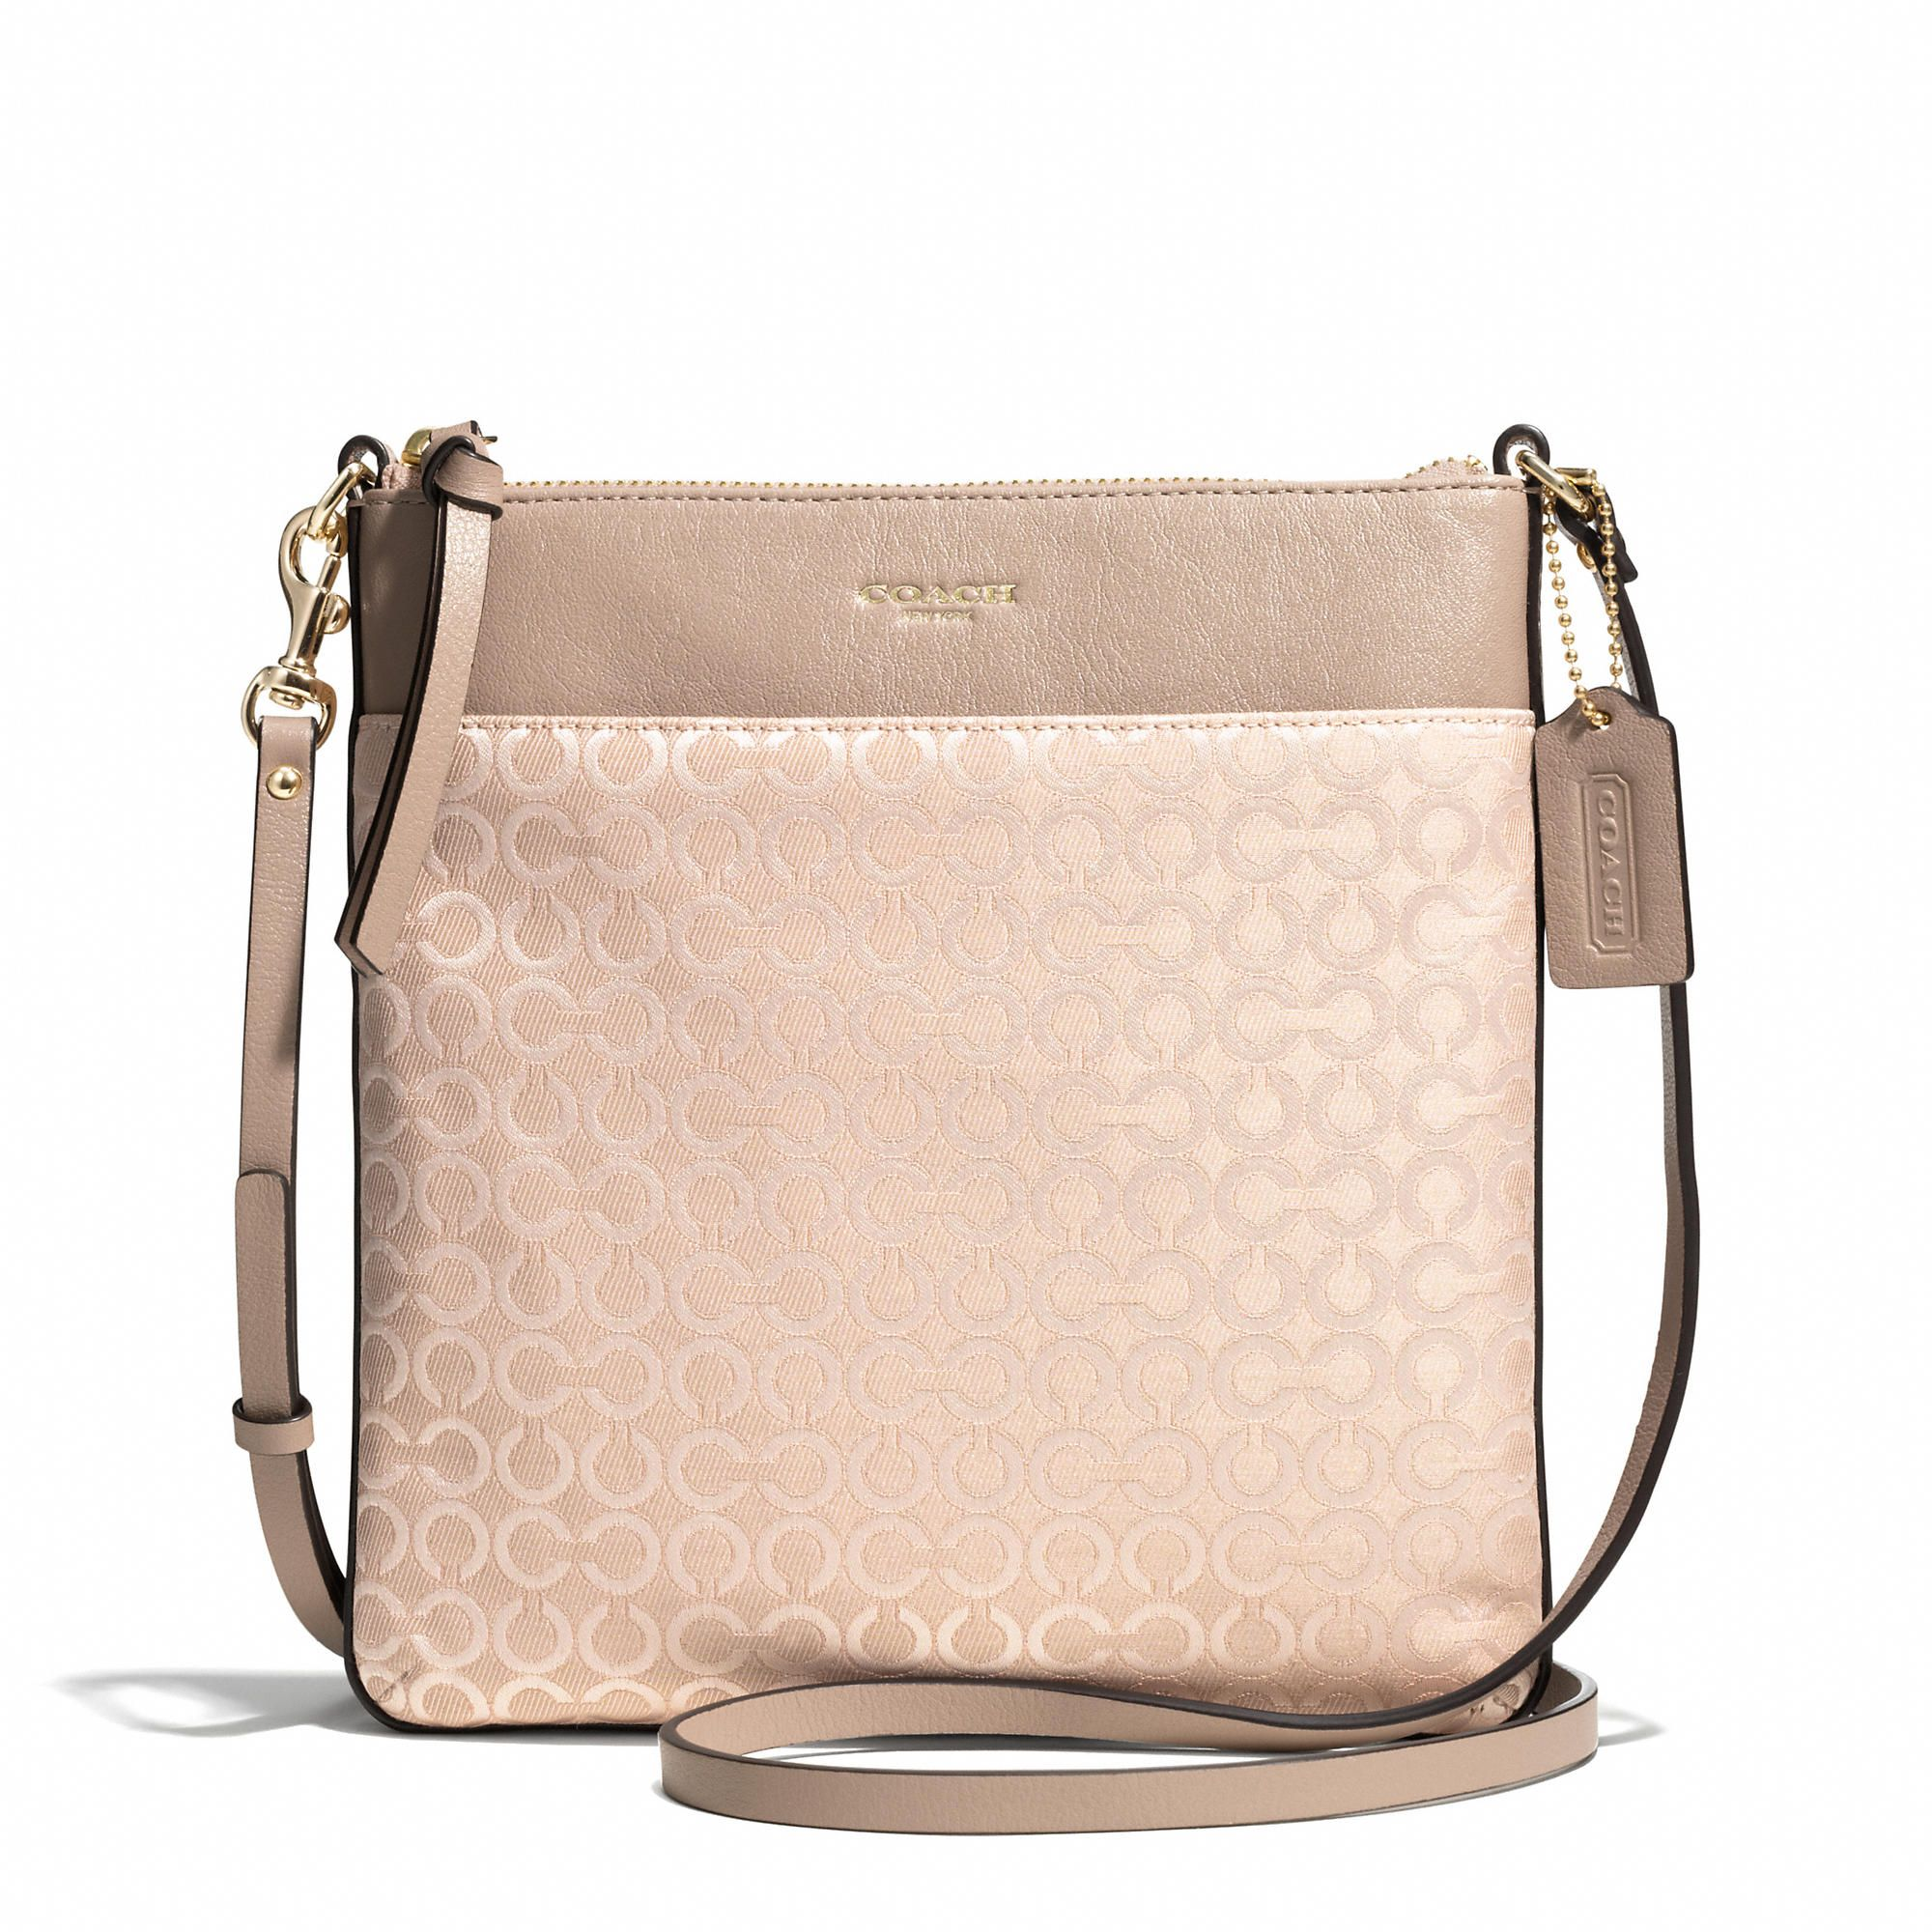 acb23a2b4422 Coach Madison North South Swingpack In Op Art Pearlescent Fabric - ShopStyle  Shoulder